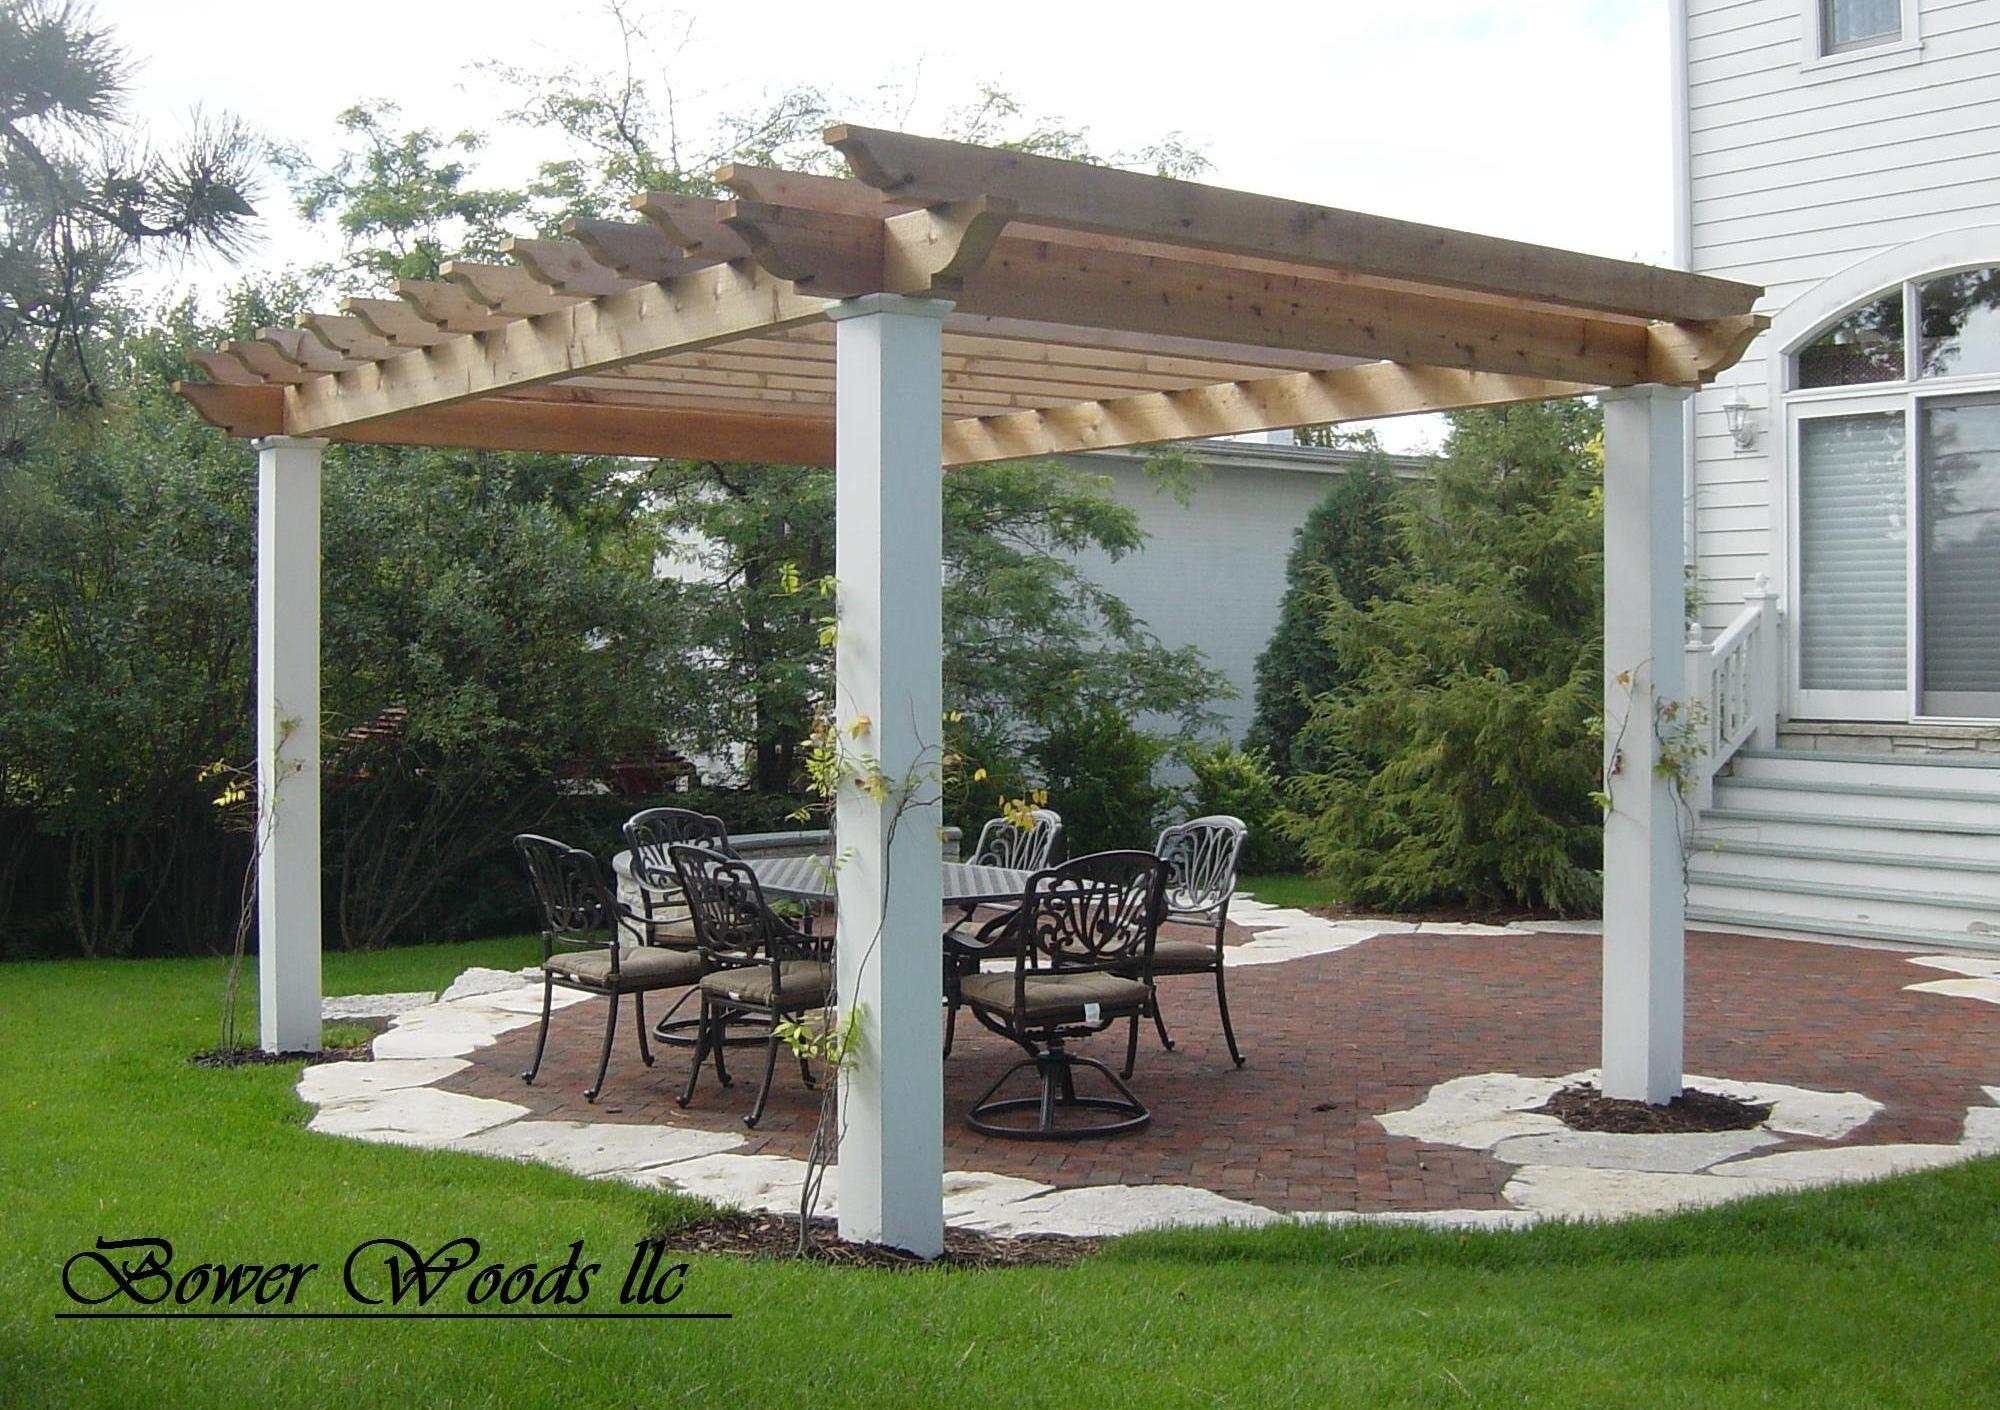 bower woods llc custom garden structures rustic pergolas. Black Bedroom Furniture Sets. Home Design Ideas